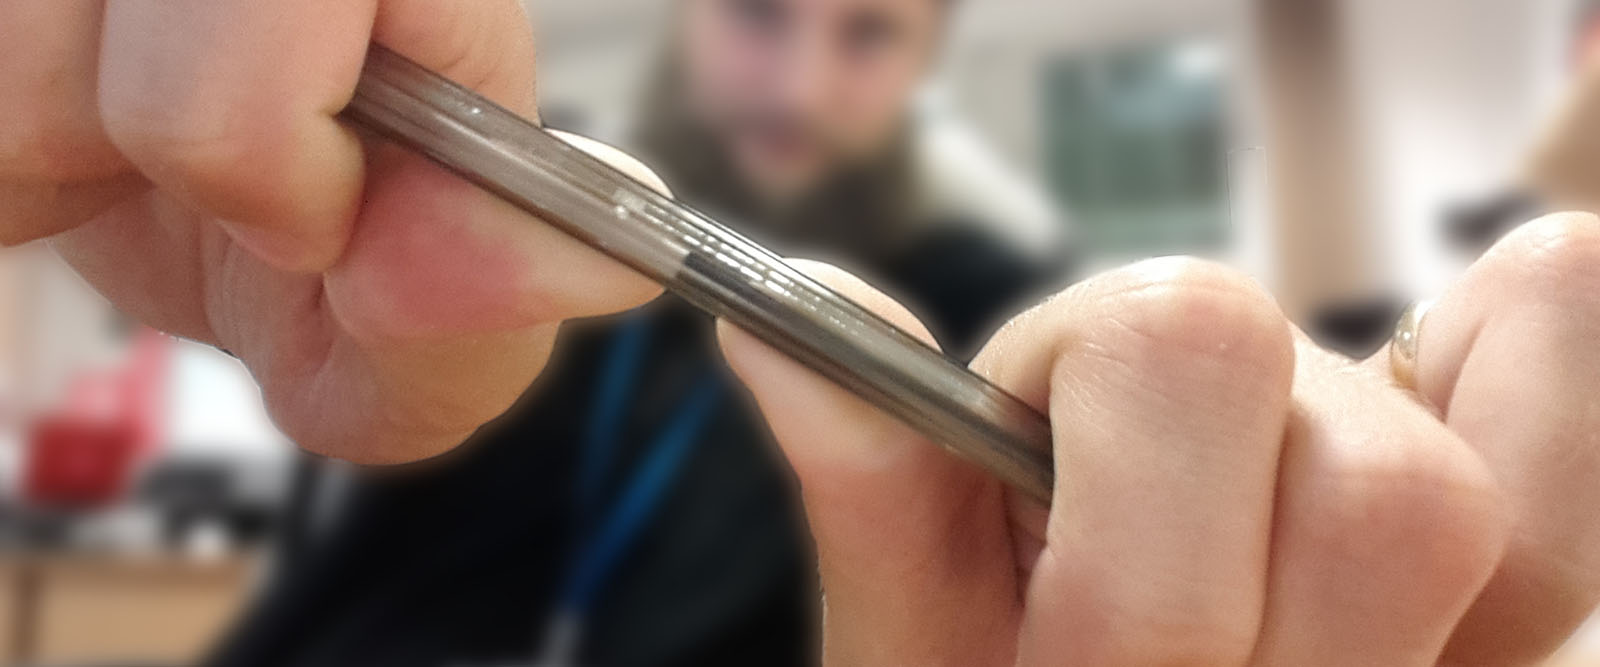 A man is holding a pen up to the camera and is in the process of snapping it in half.